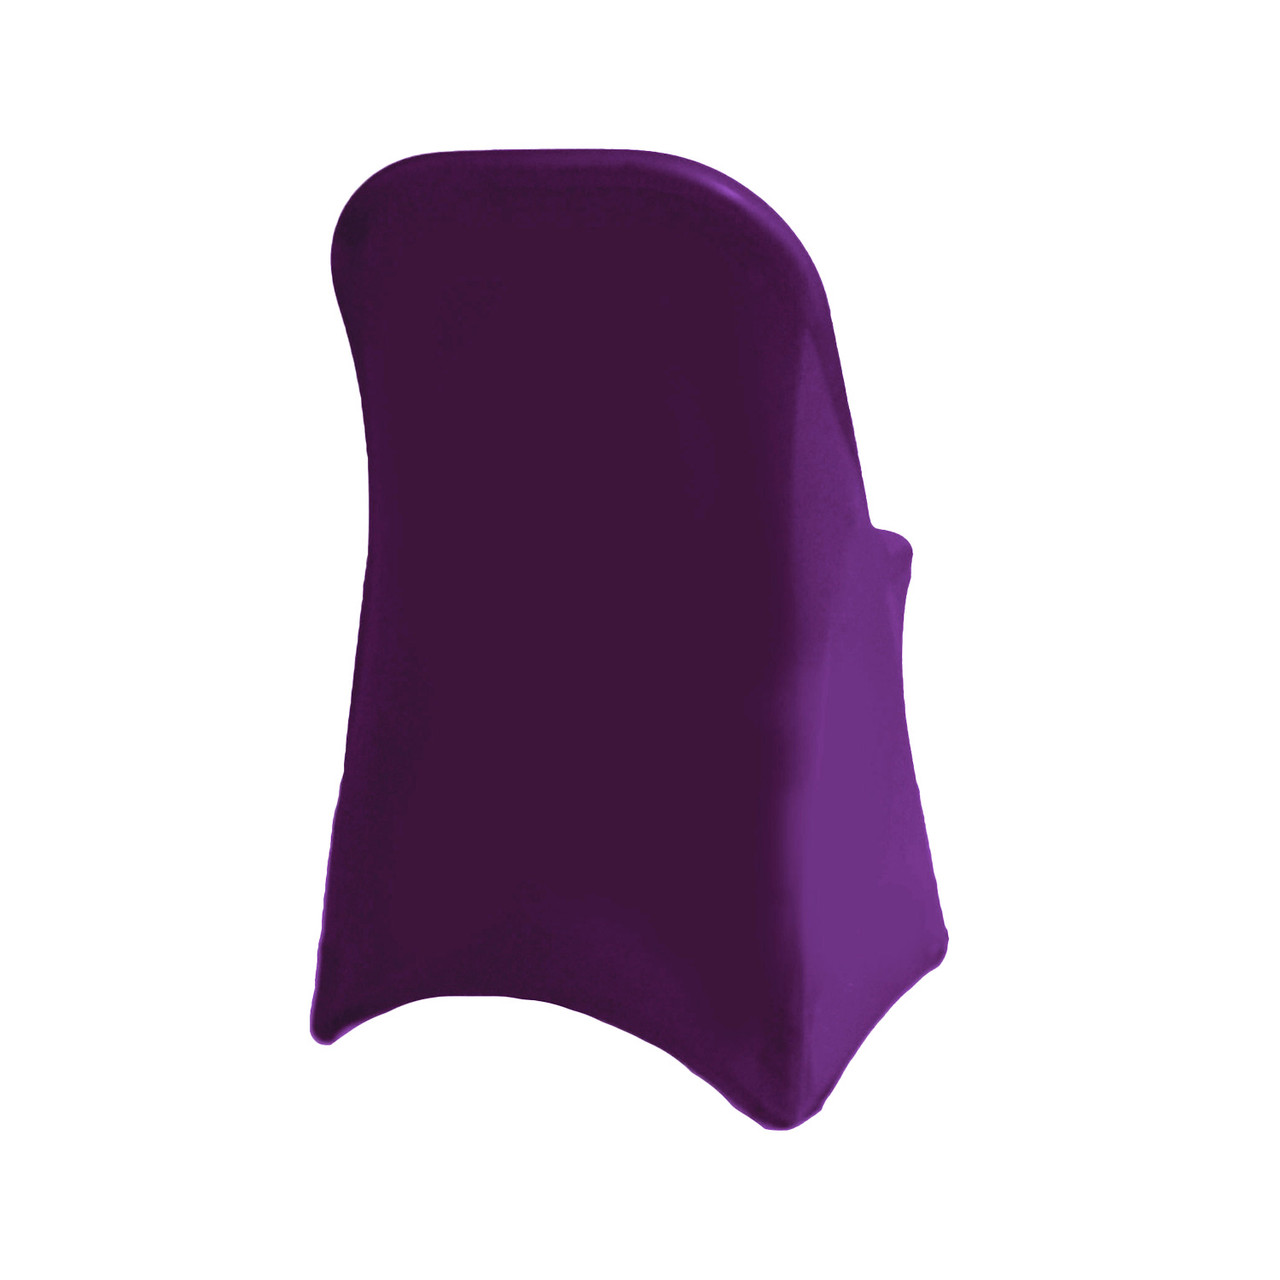 Fabulous Stretch Spandex Folding Chair Cover Eggplant Machost Co Dining Chair Design Ideas Machostcouk